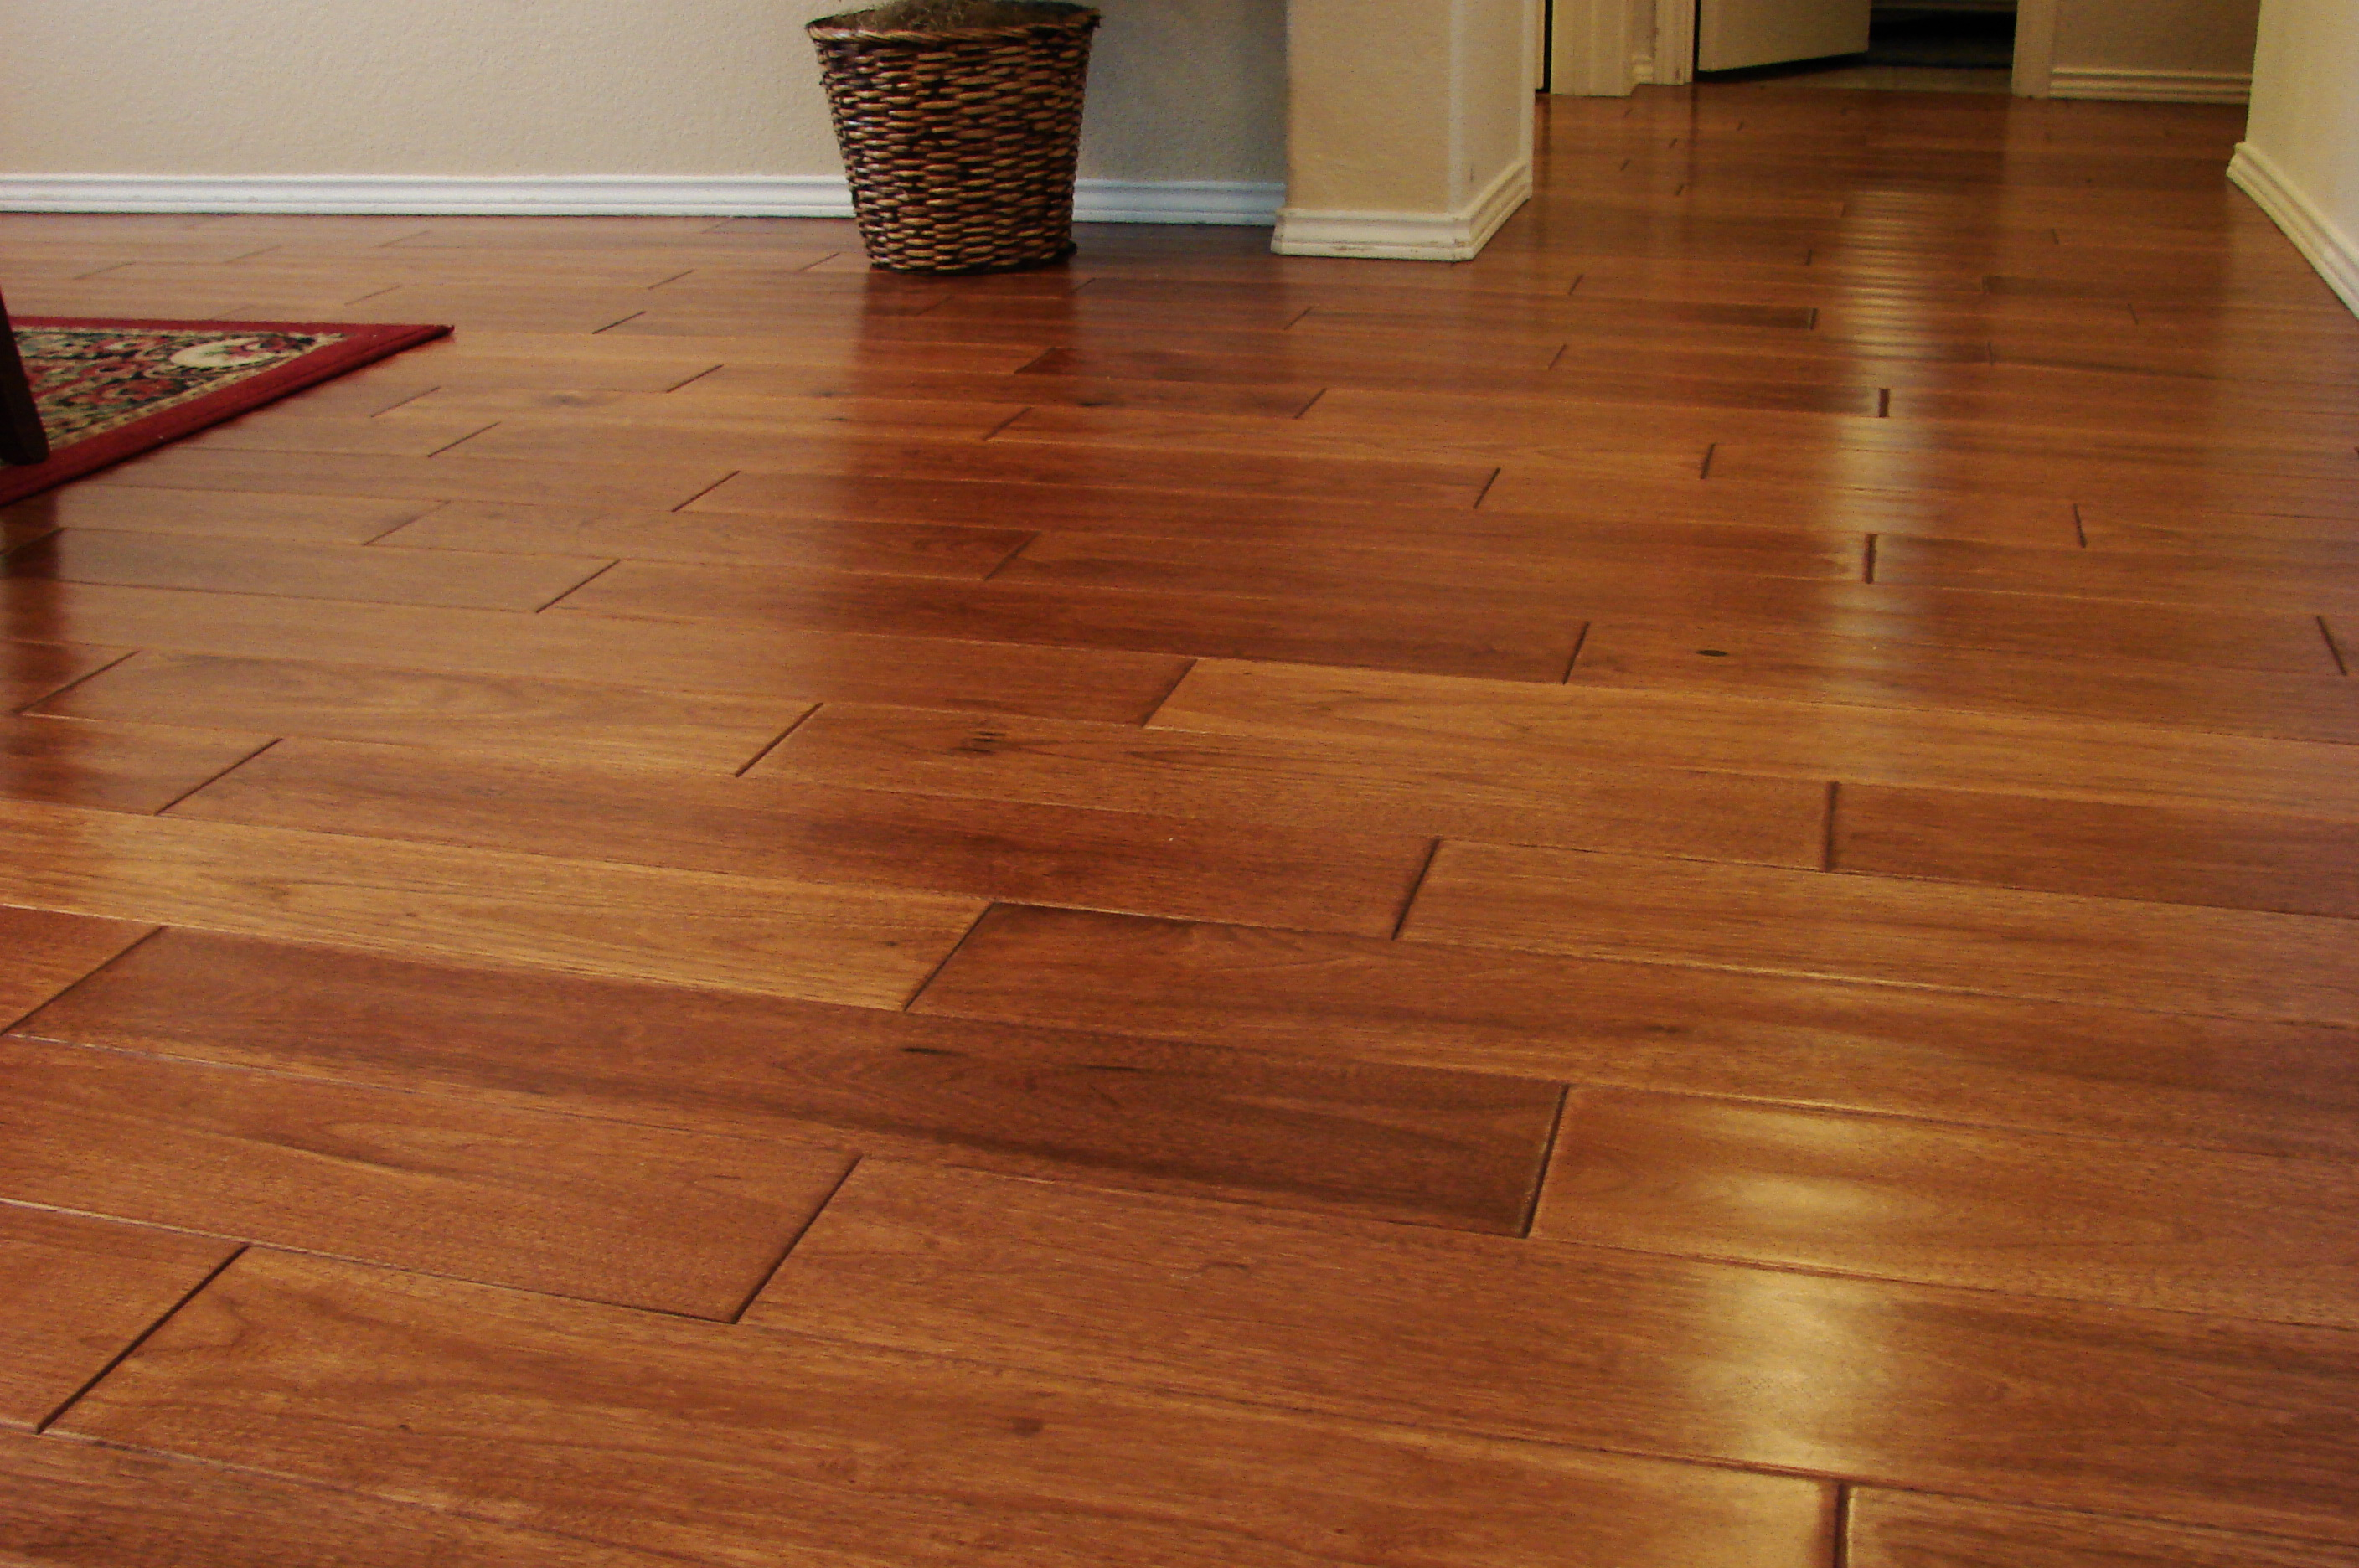 FileWood Flooring Made Of Hickory Woodjpg Wikimedia